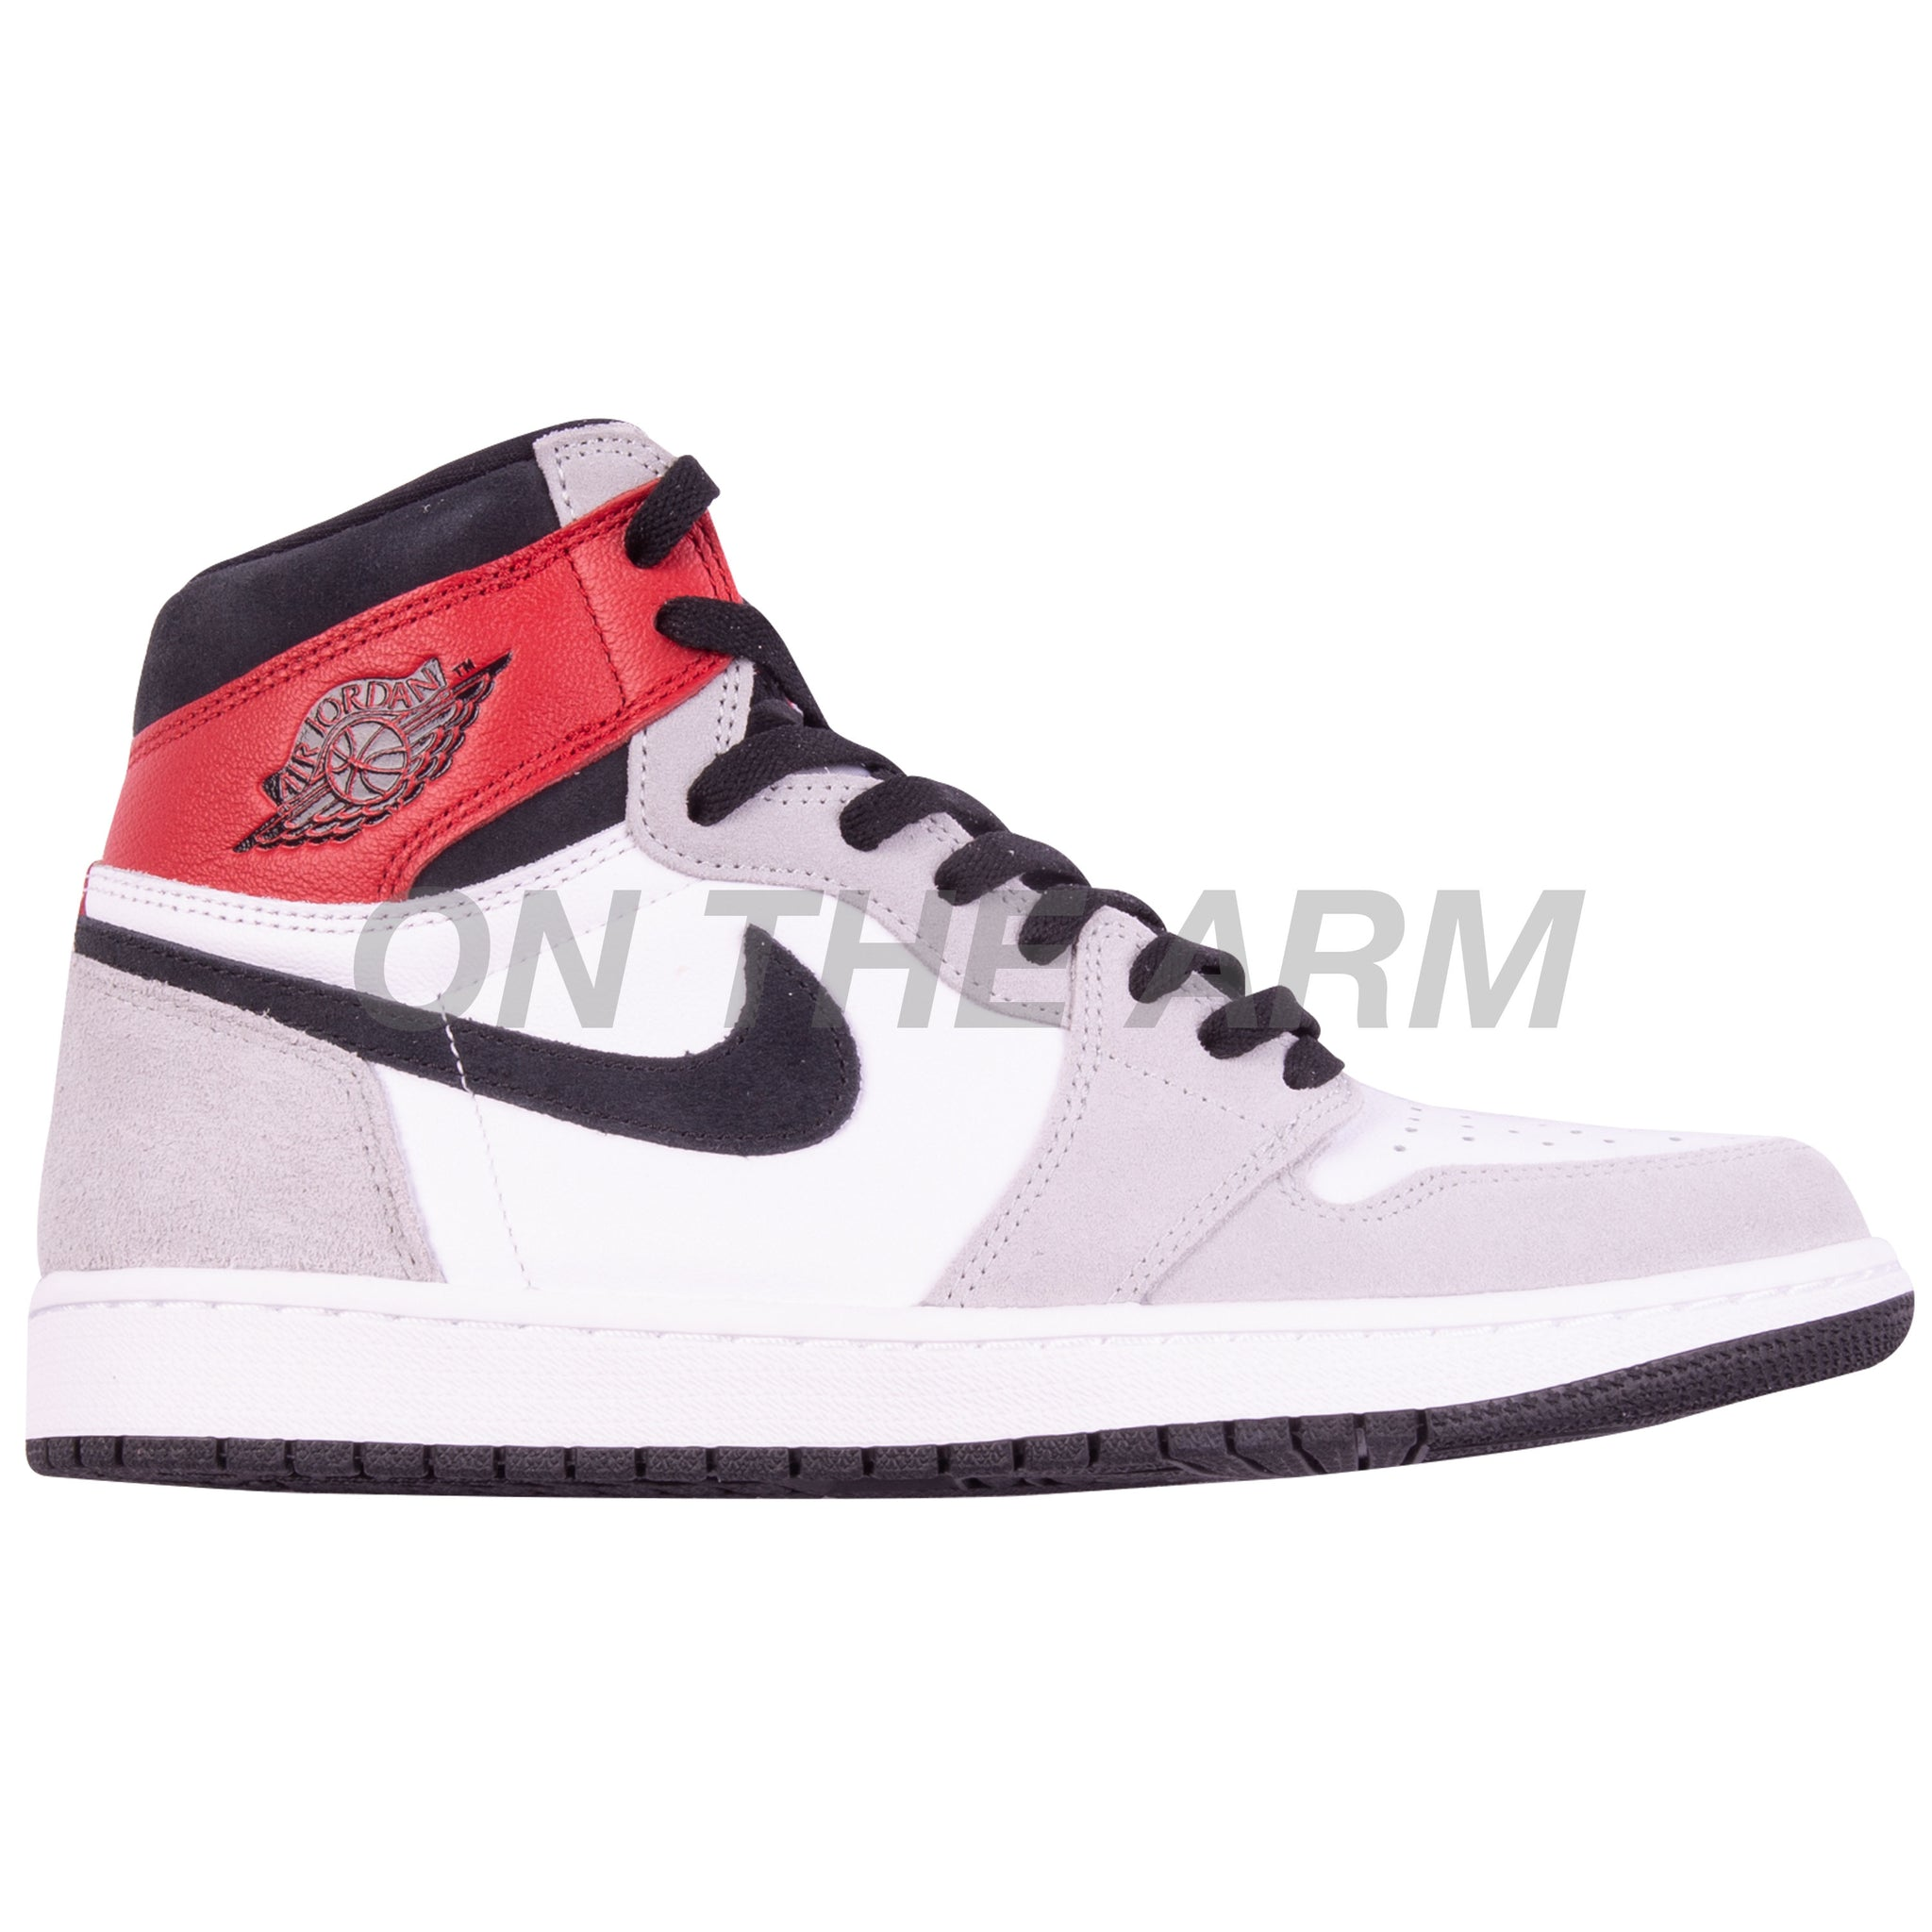 Nike Smoke Grey Air Jordan 1